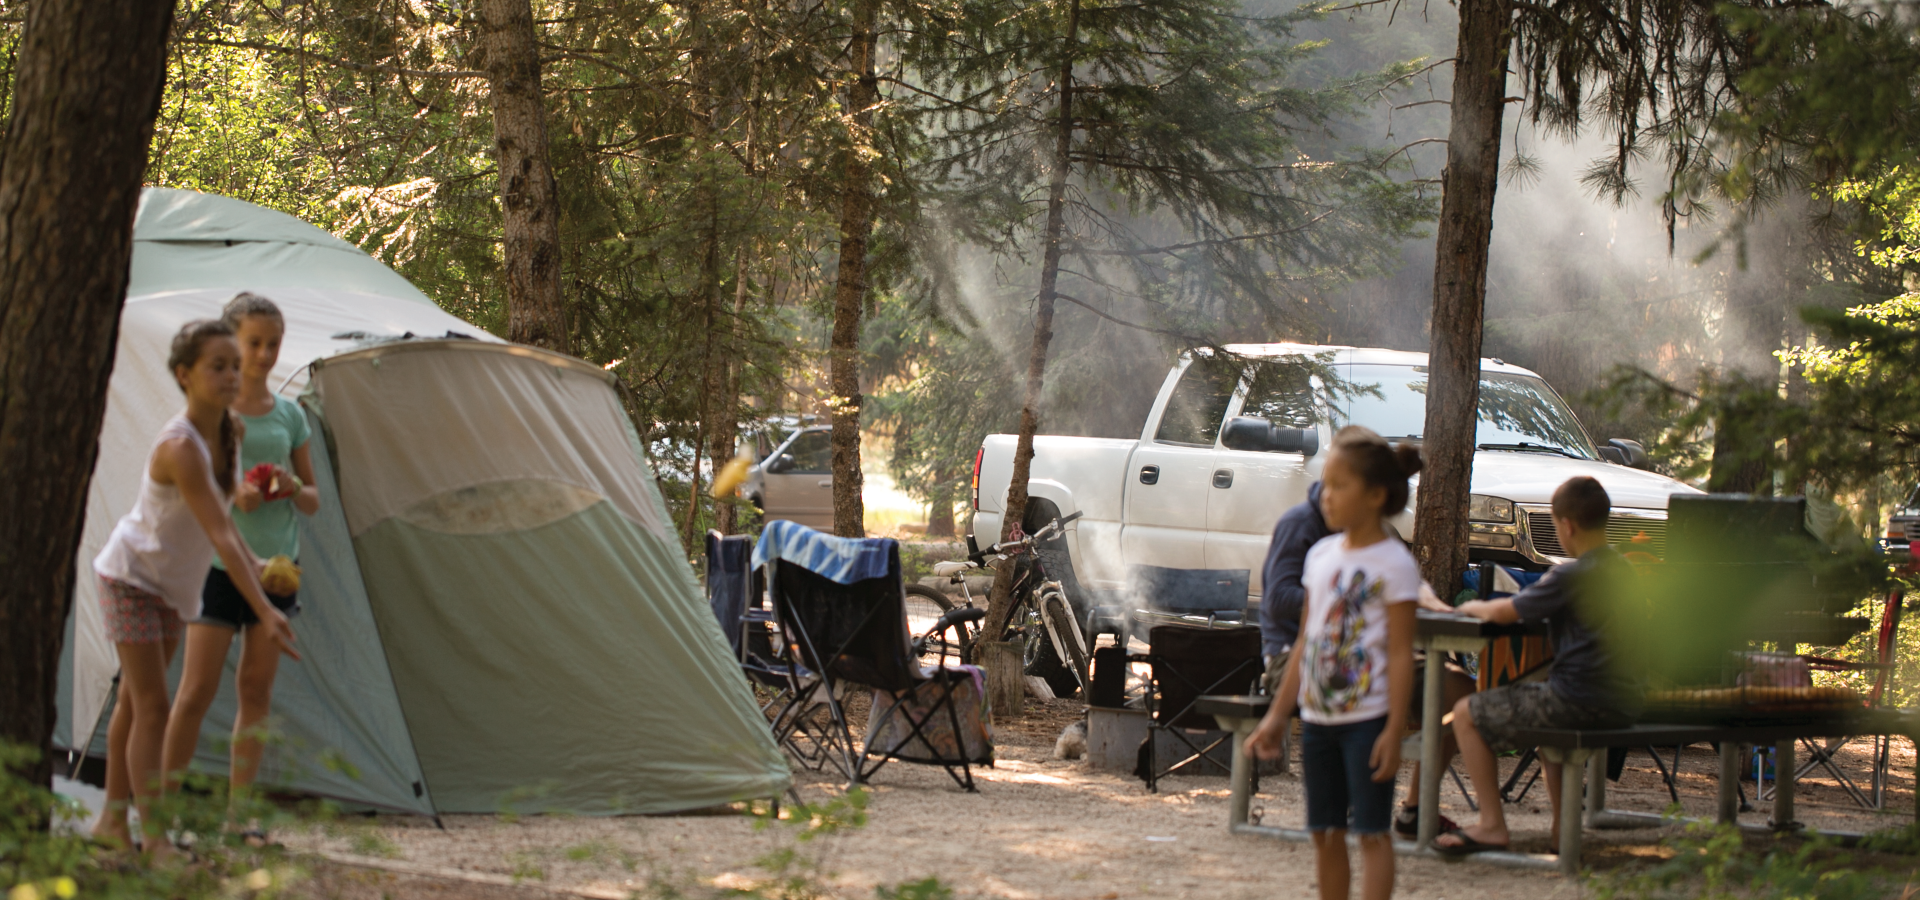 Camping in Idaho, Move to Idaho